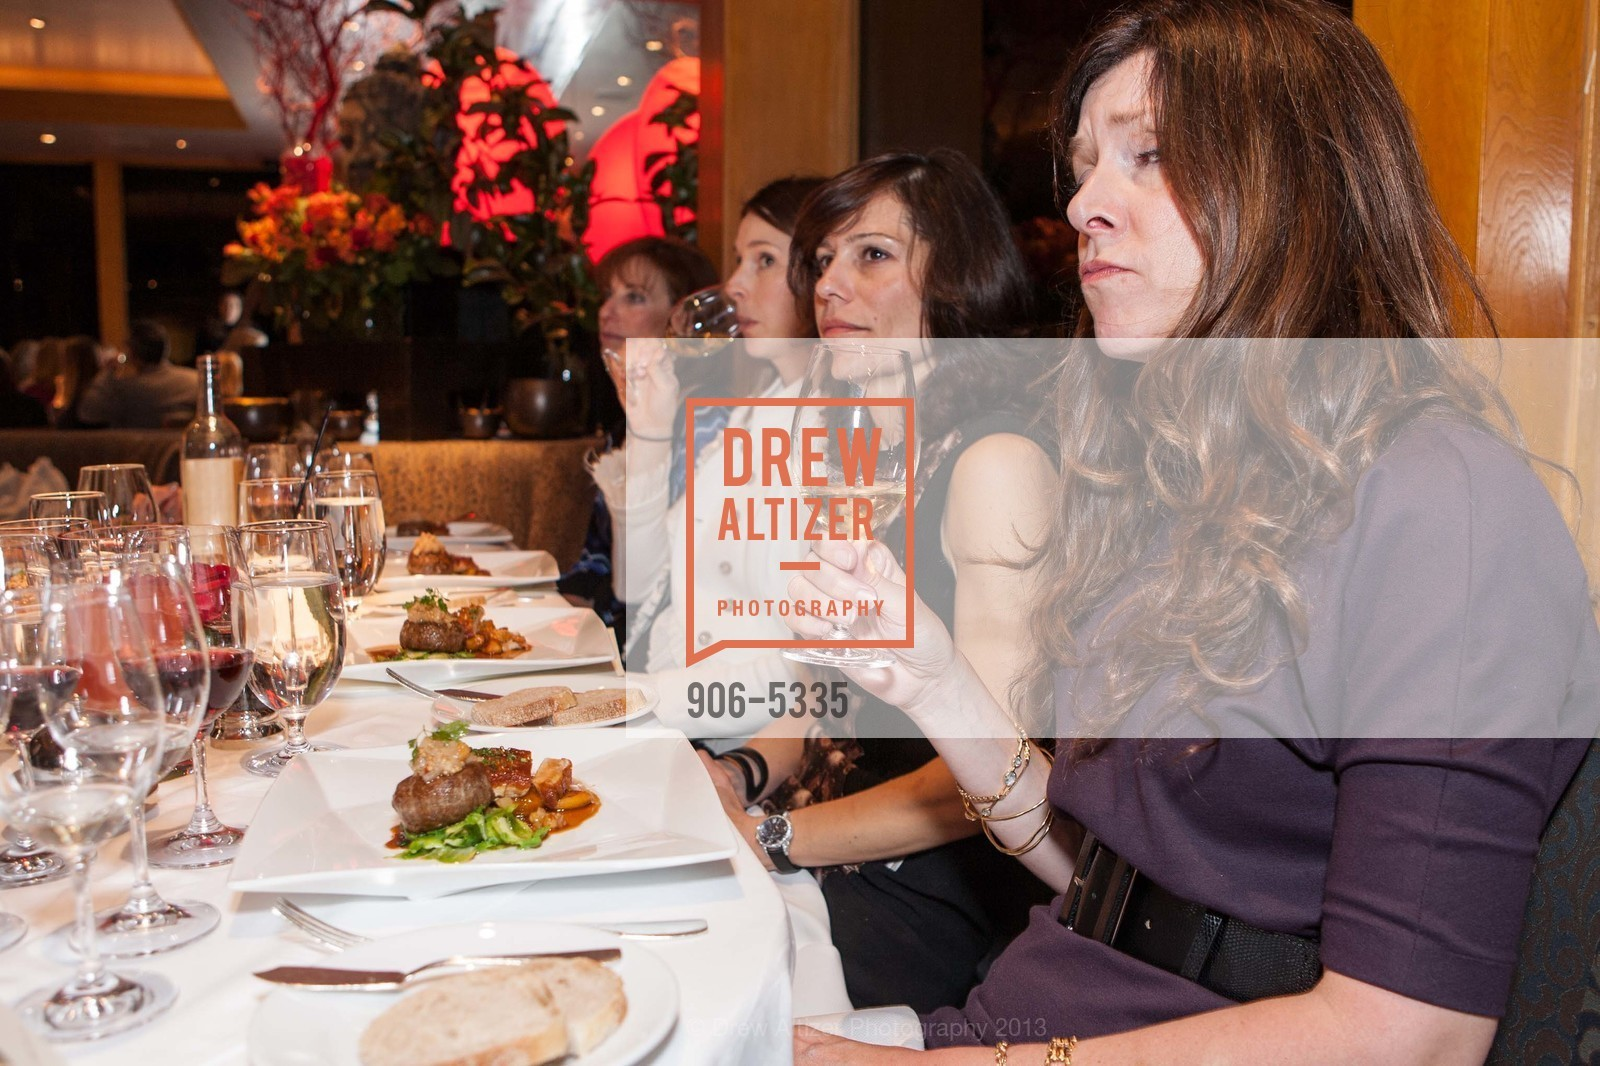 Belle Griffiths, Katie Taormino, Gina Sege, Lisa Considine, Photo #906-5335